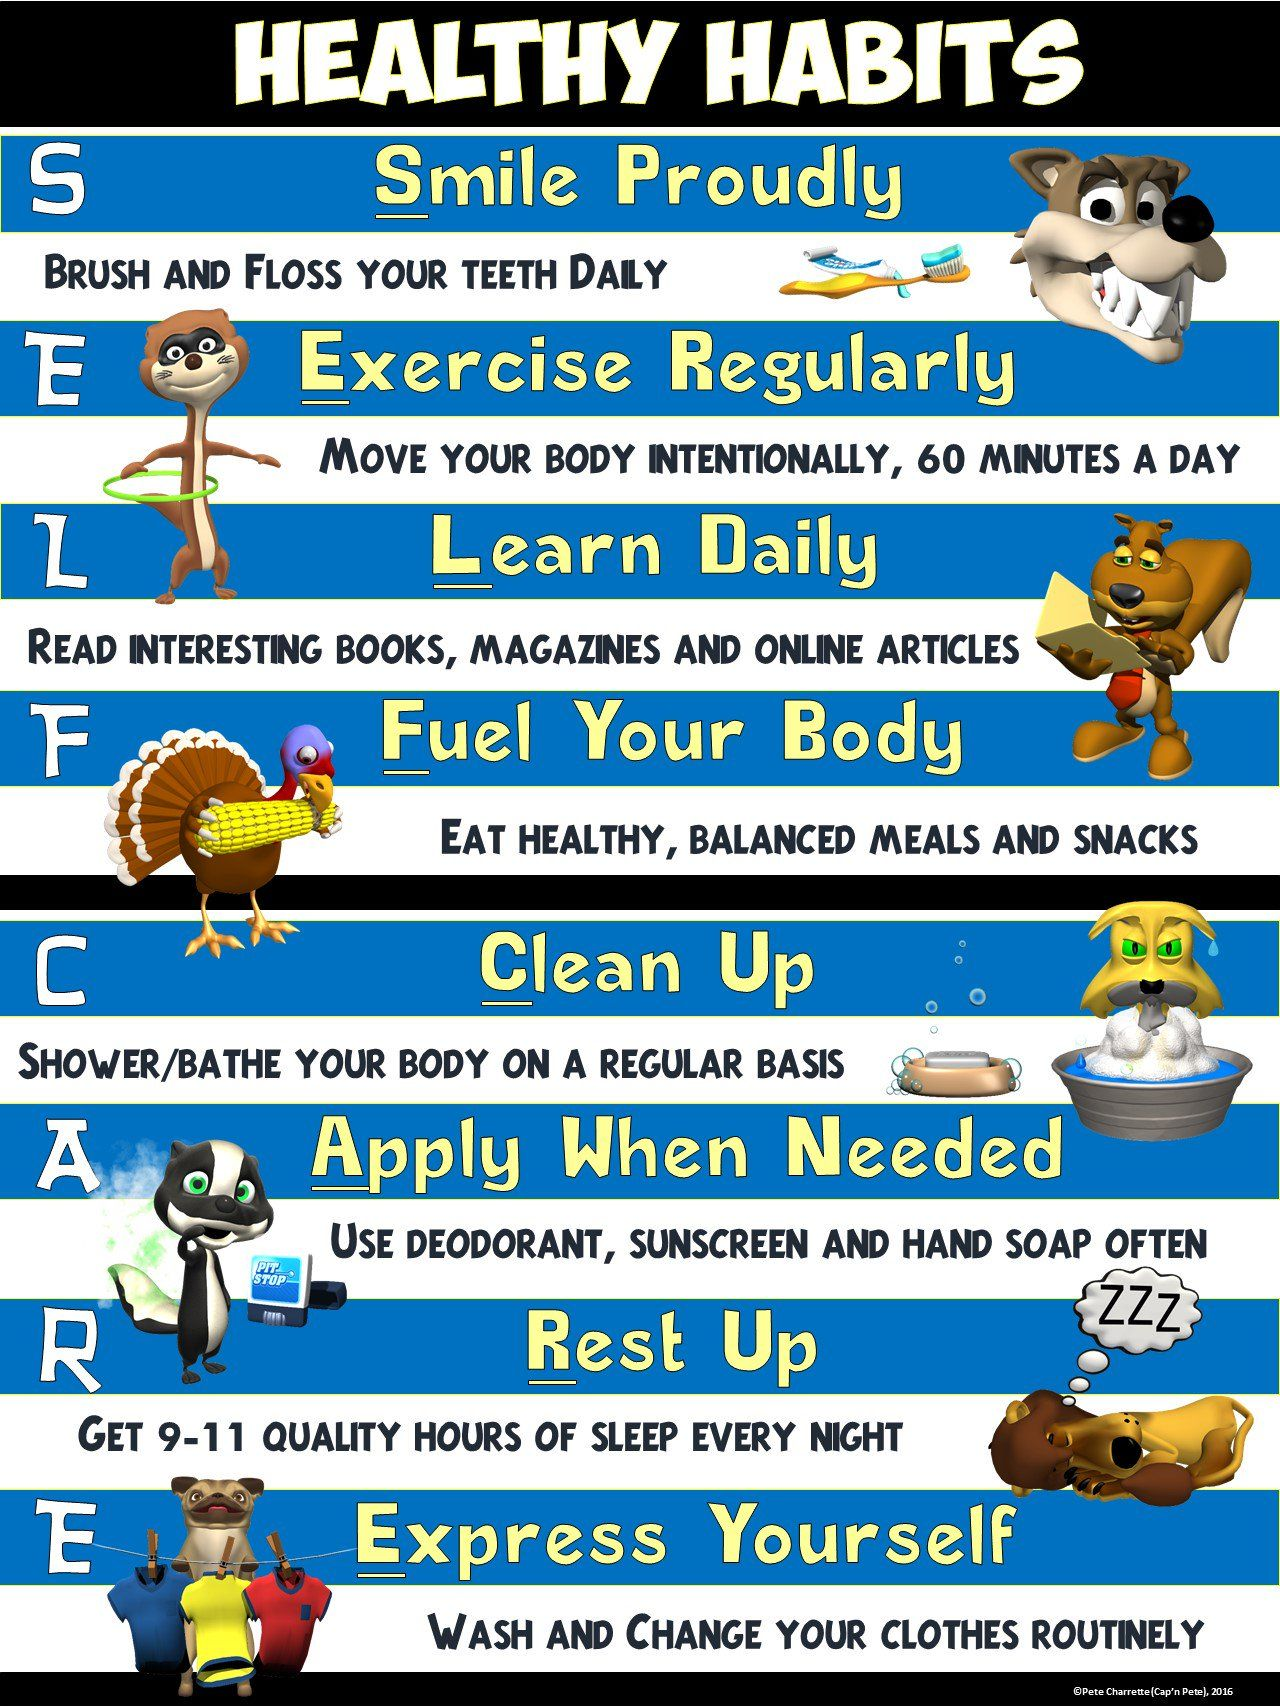 Healthy Habits Poster Self Care And Hygiene